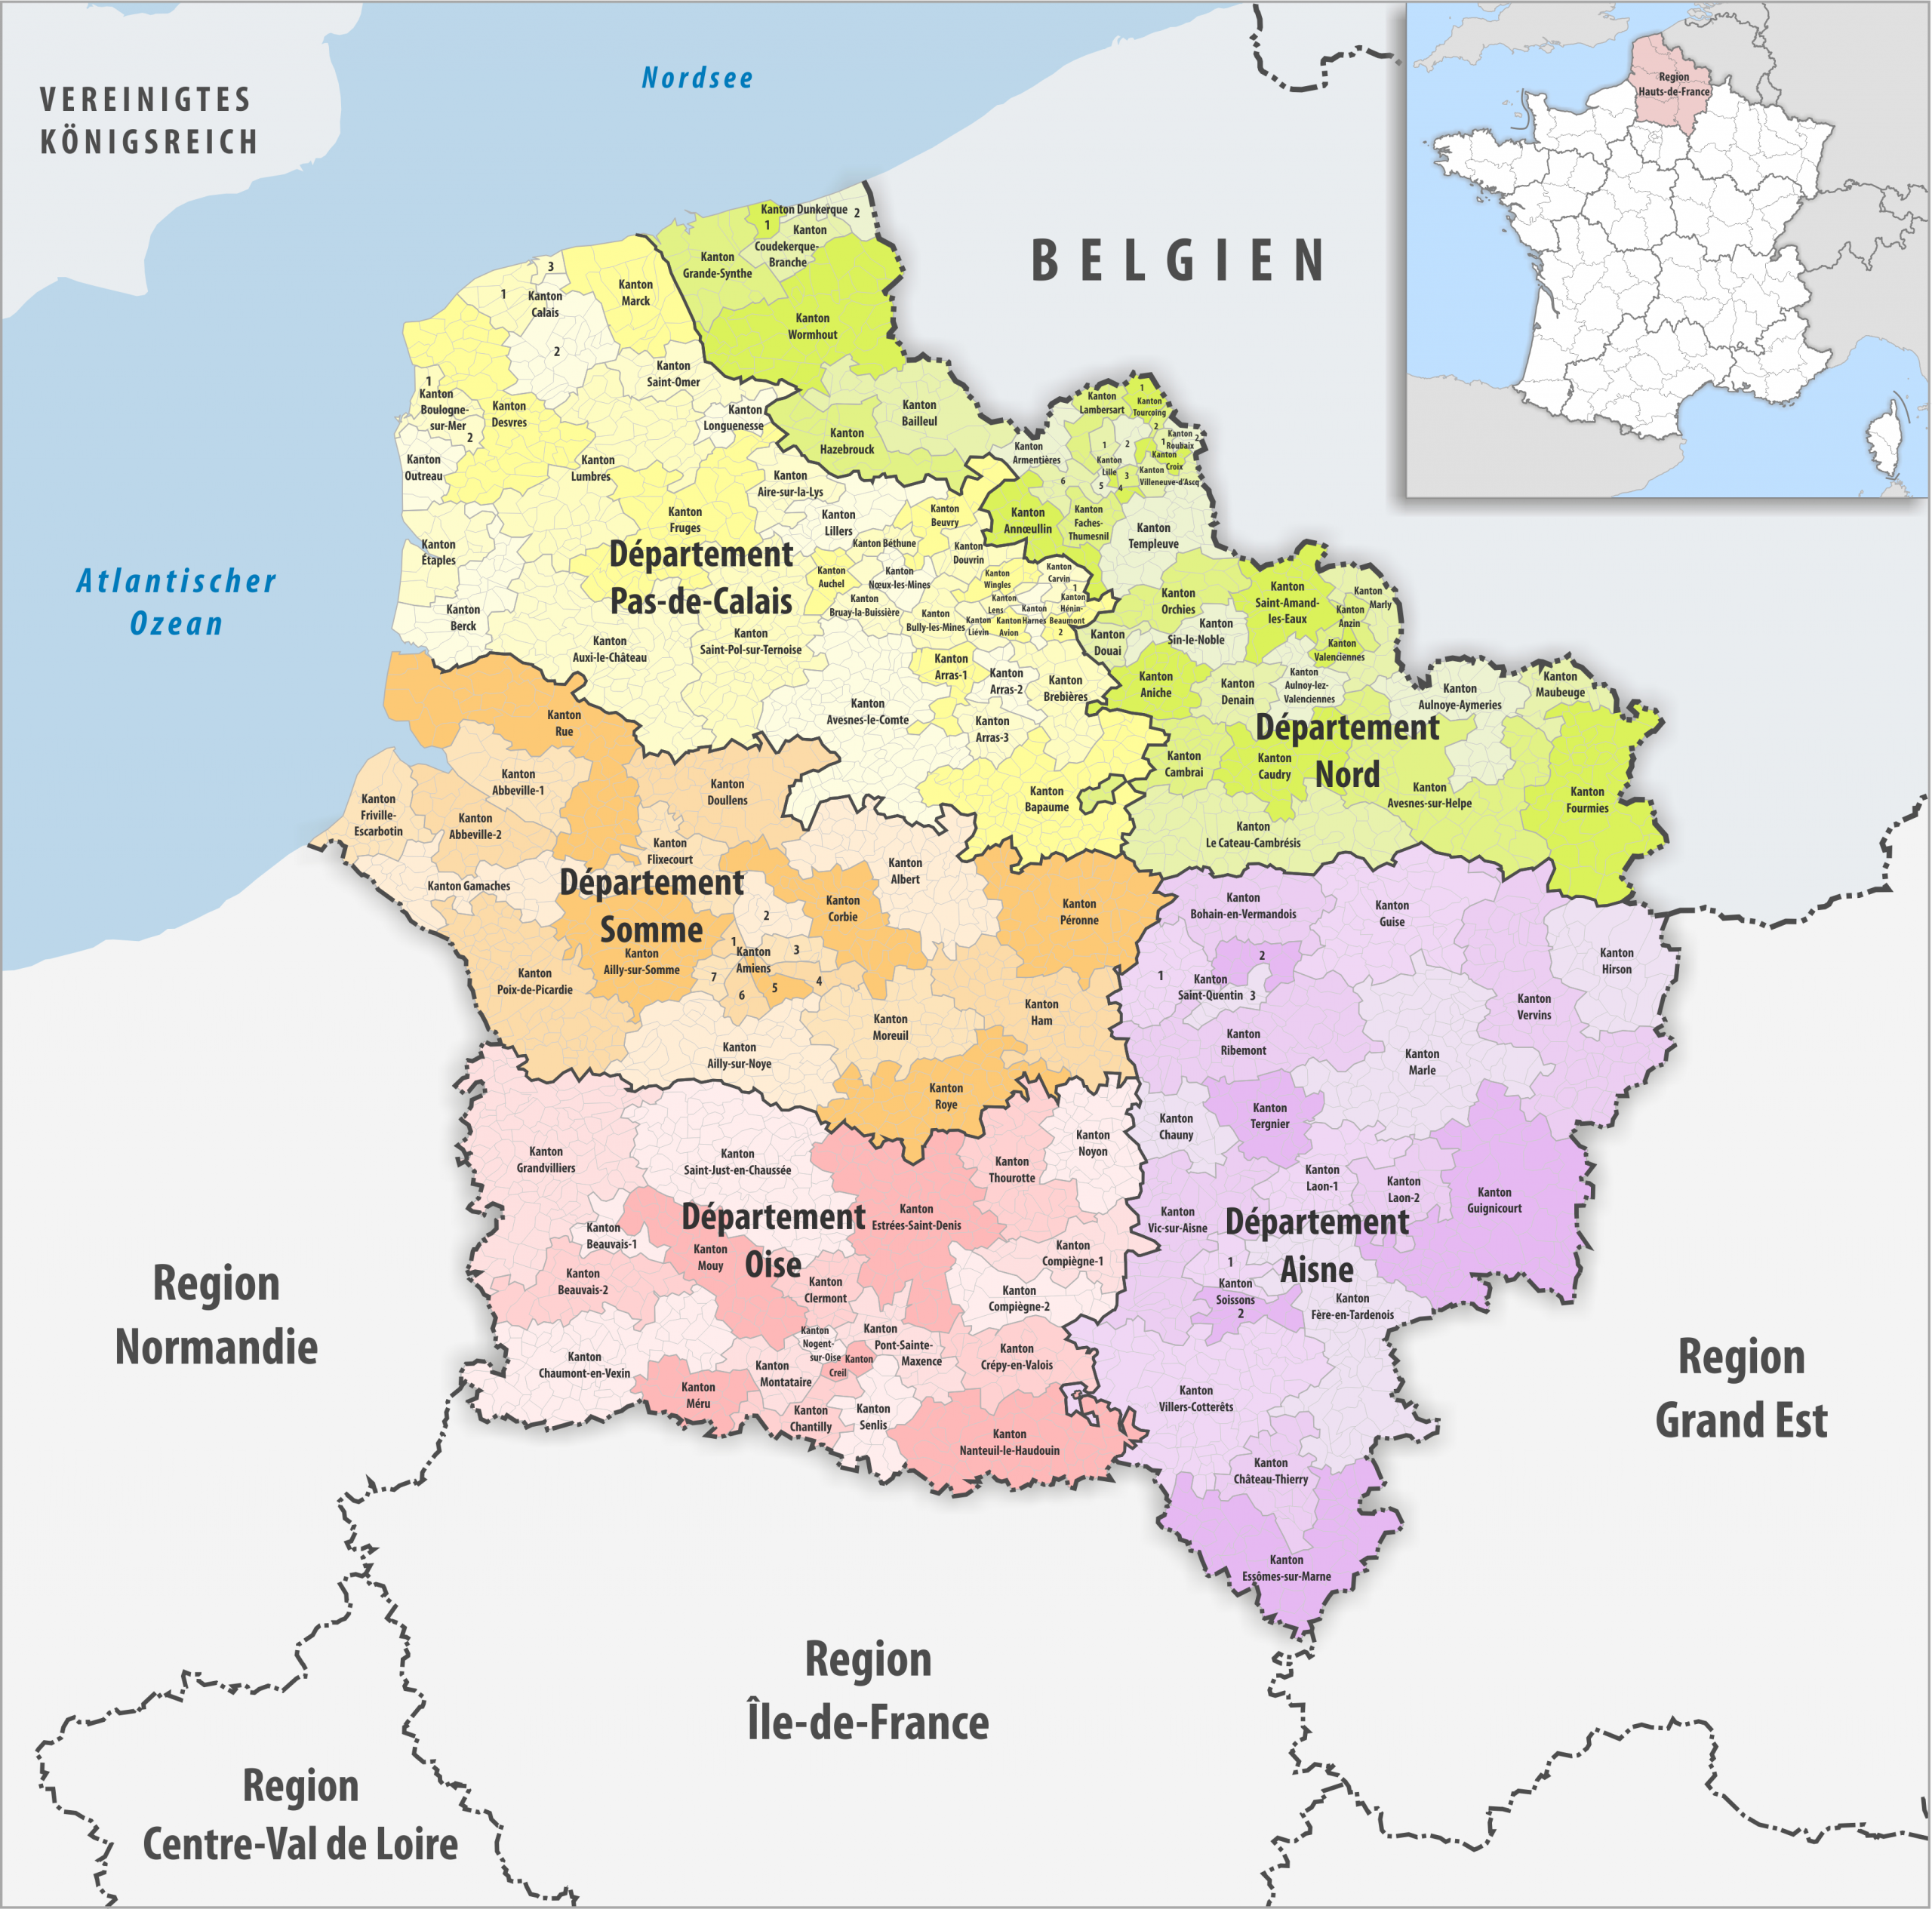 File:region Hauts-De-France Kantone 2017 - Wikimedia Commons destiné Region De France 2017